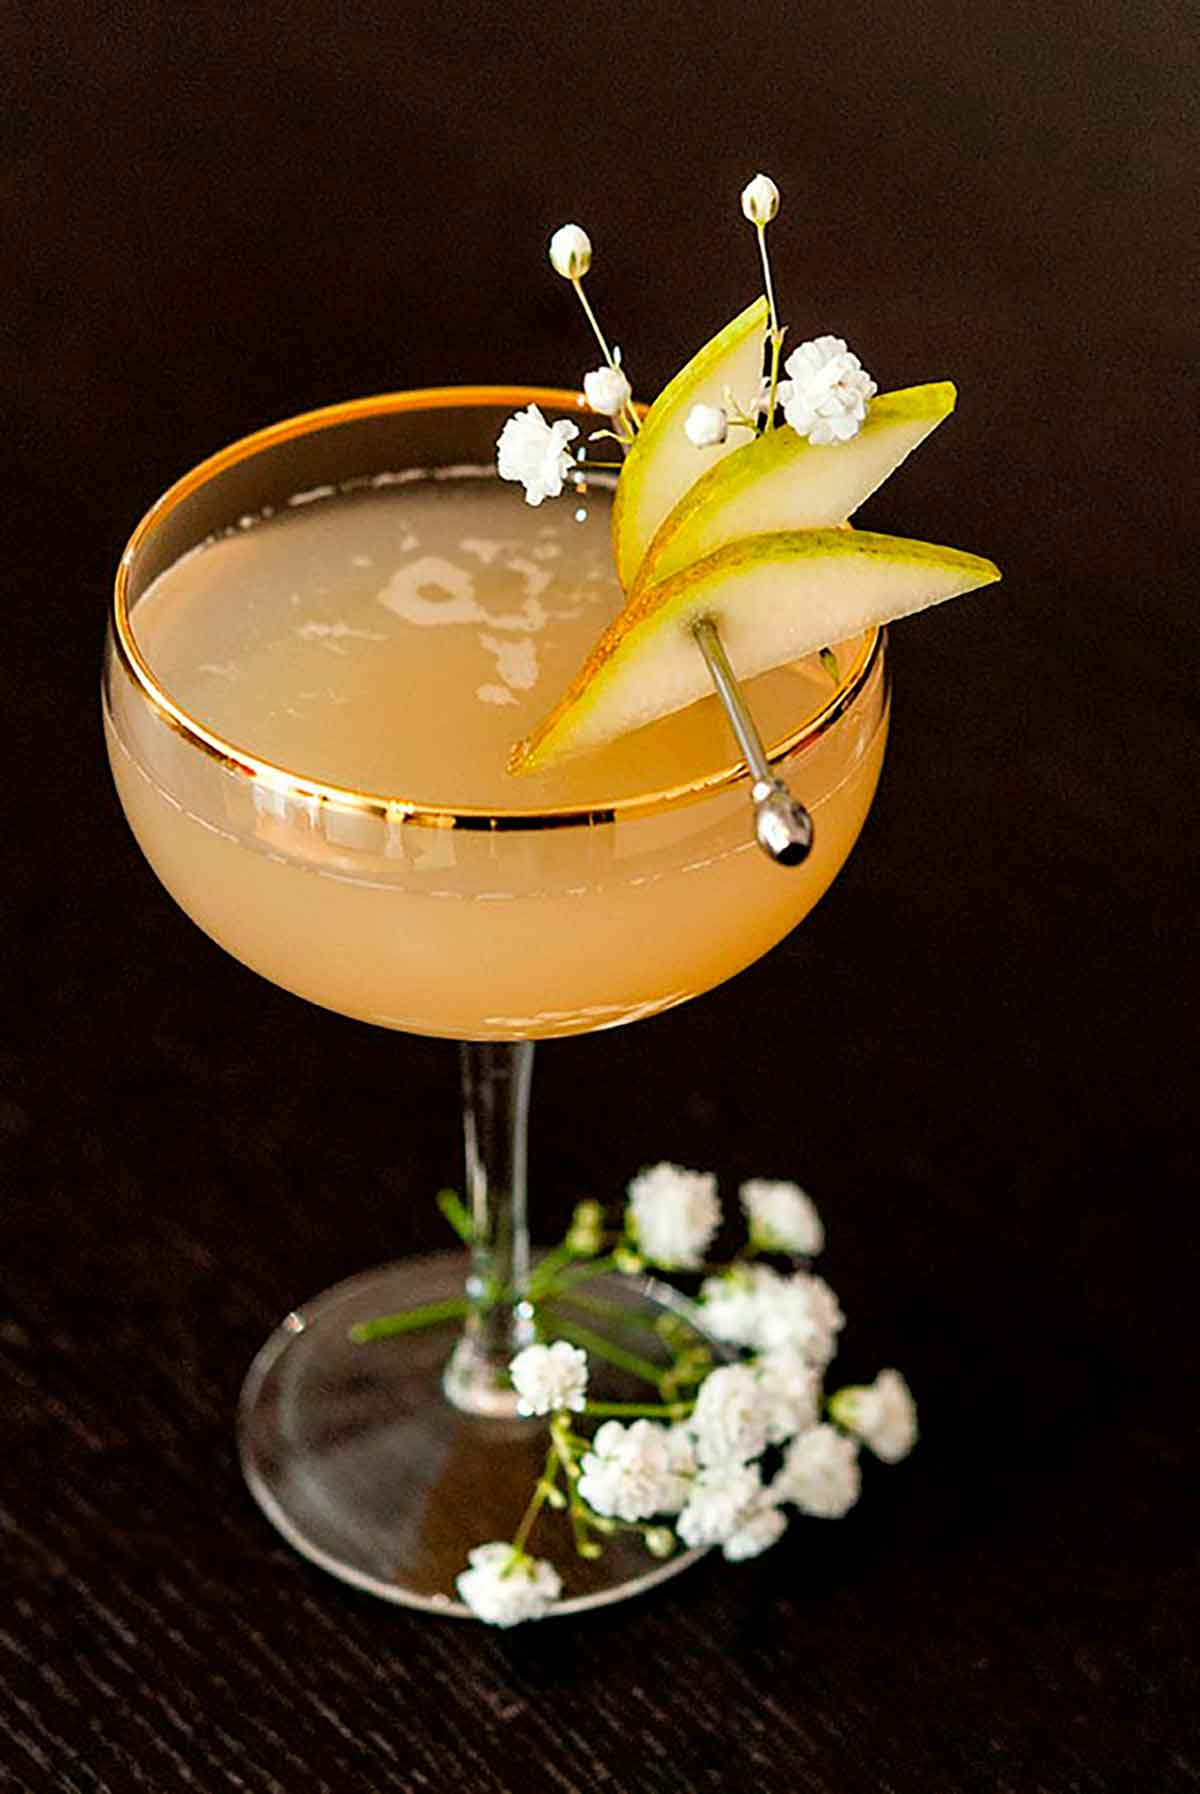 A pear and ginger cocktail, garnished with sliced pears on a cocktail pin and a few baby's breath flowers.